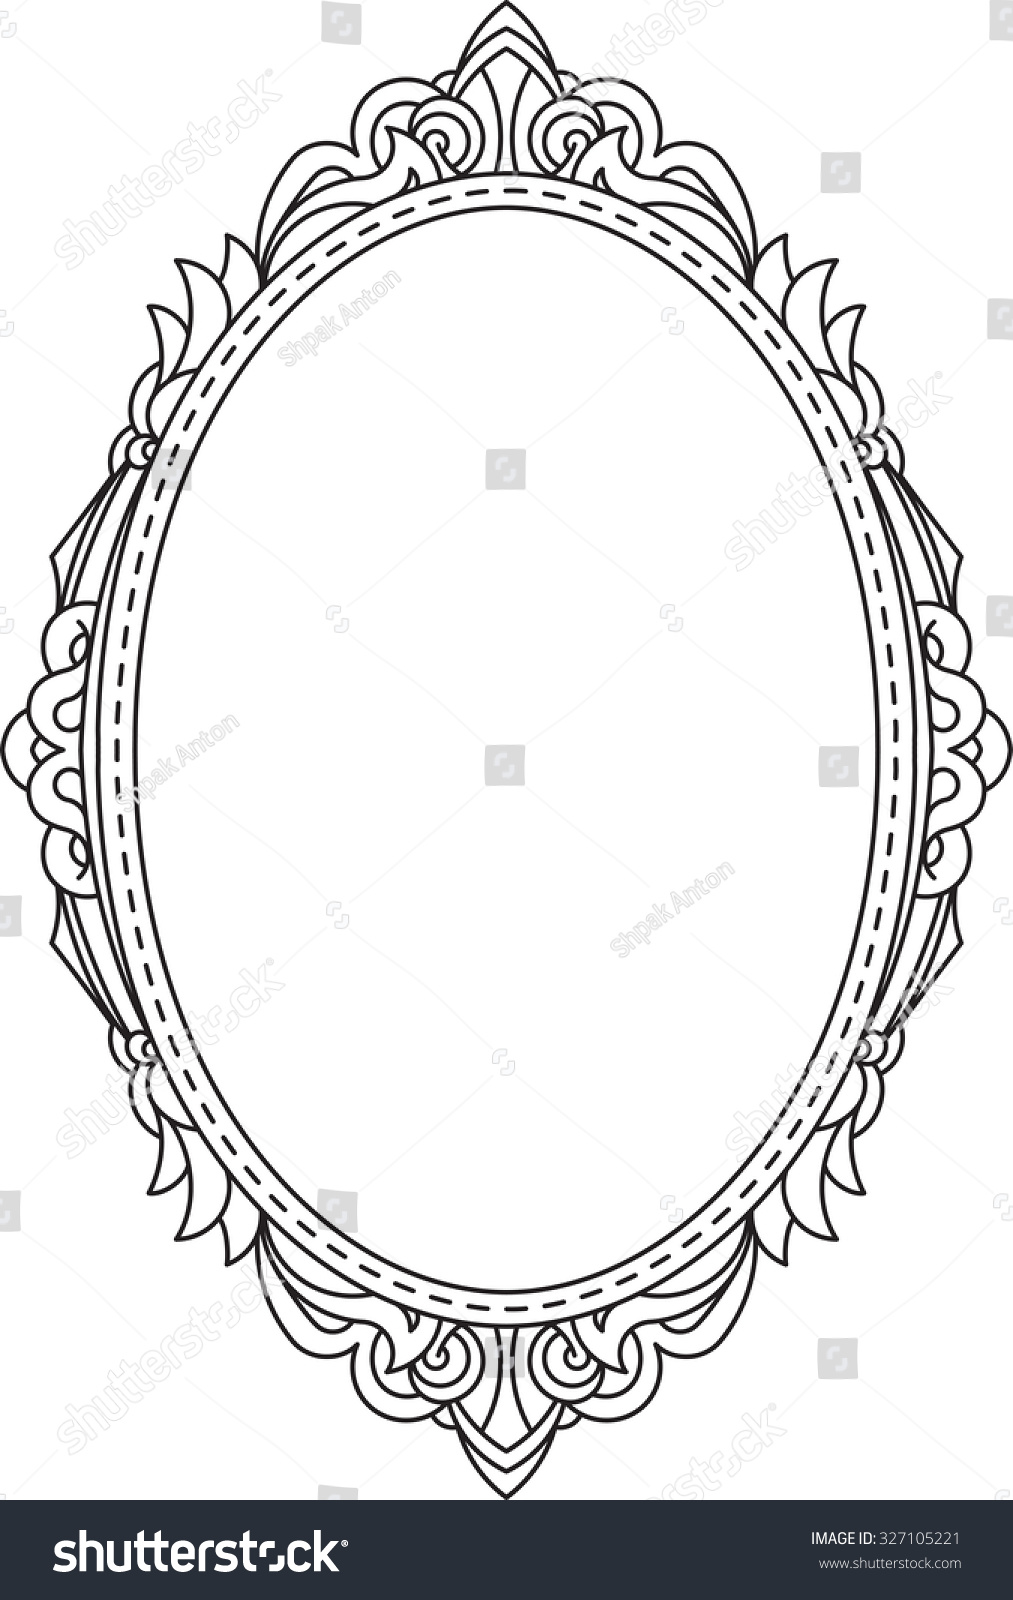 antique vintage oval frame with blank space for text may be used as